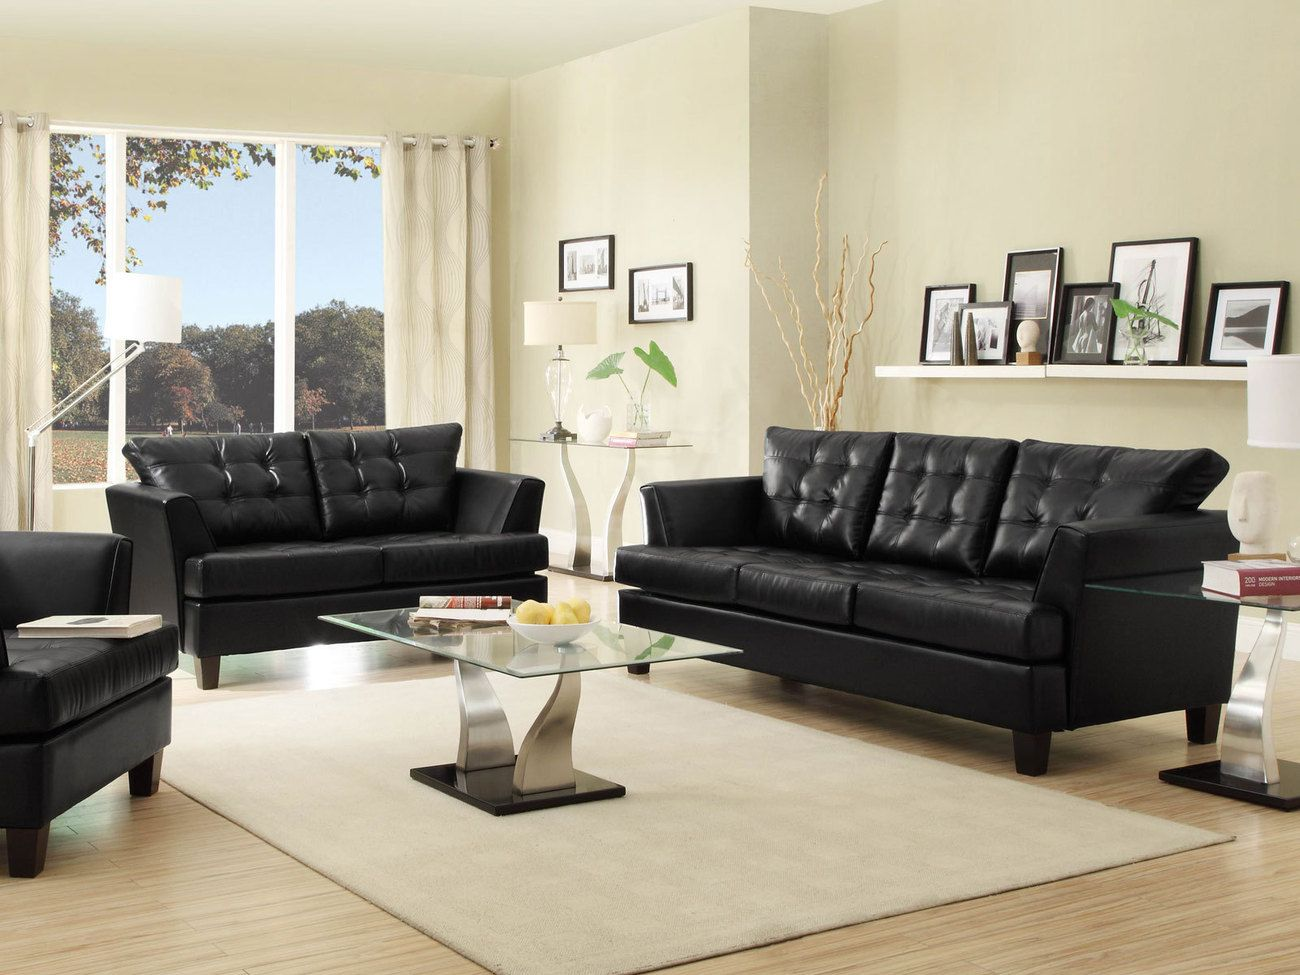 Living Room Furniture Sofas Iris Modern Black Faux Leather Sofa Couch Loveseat Set Living